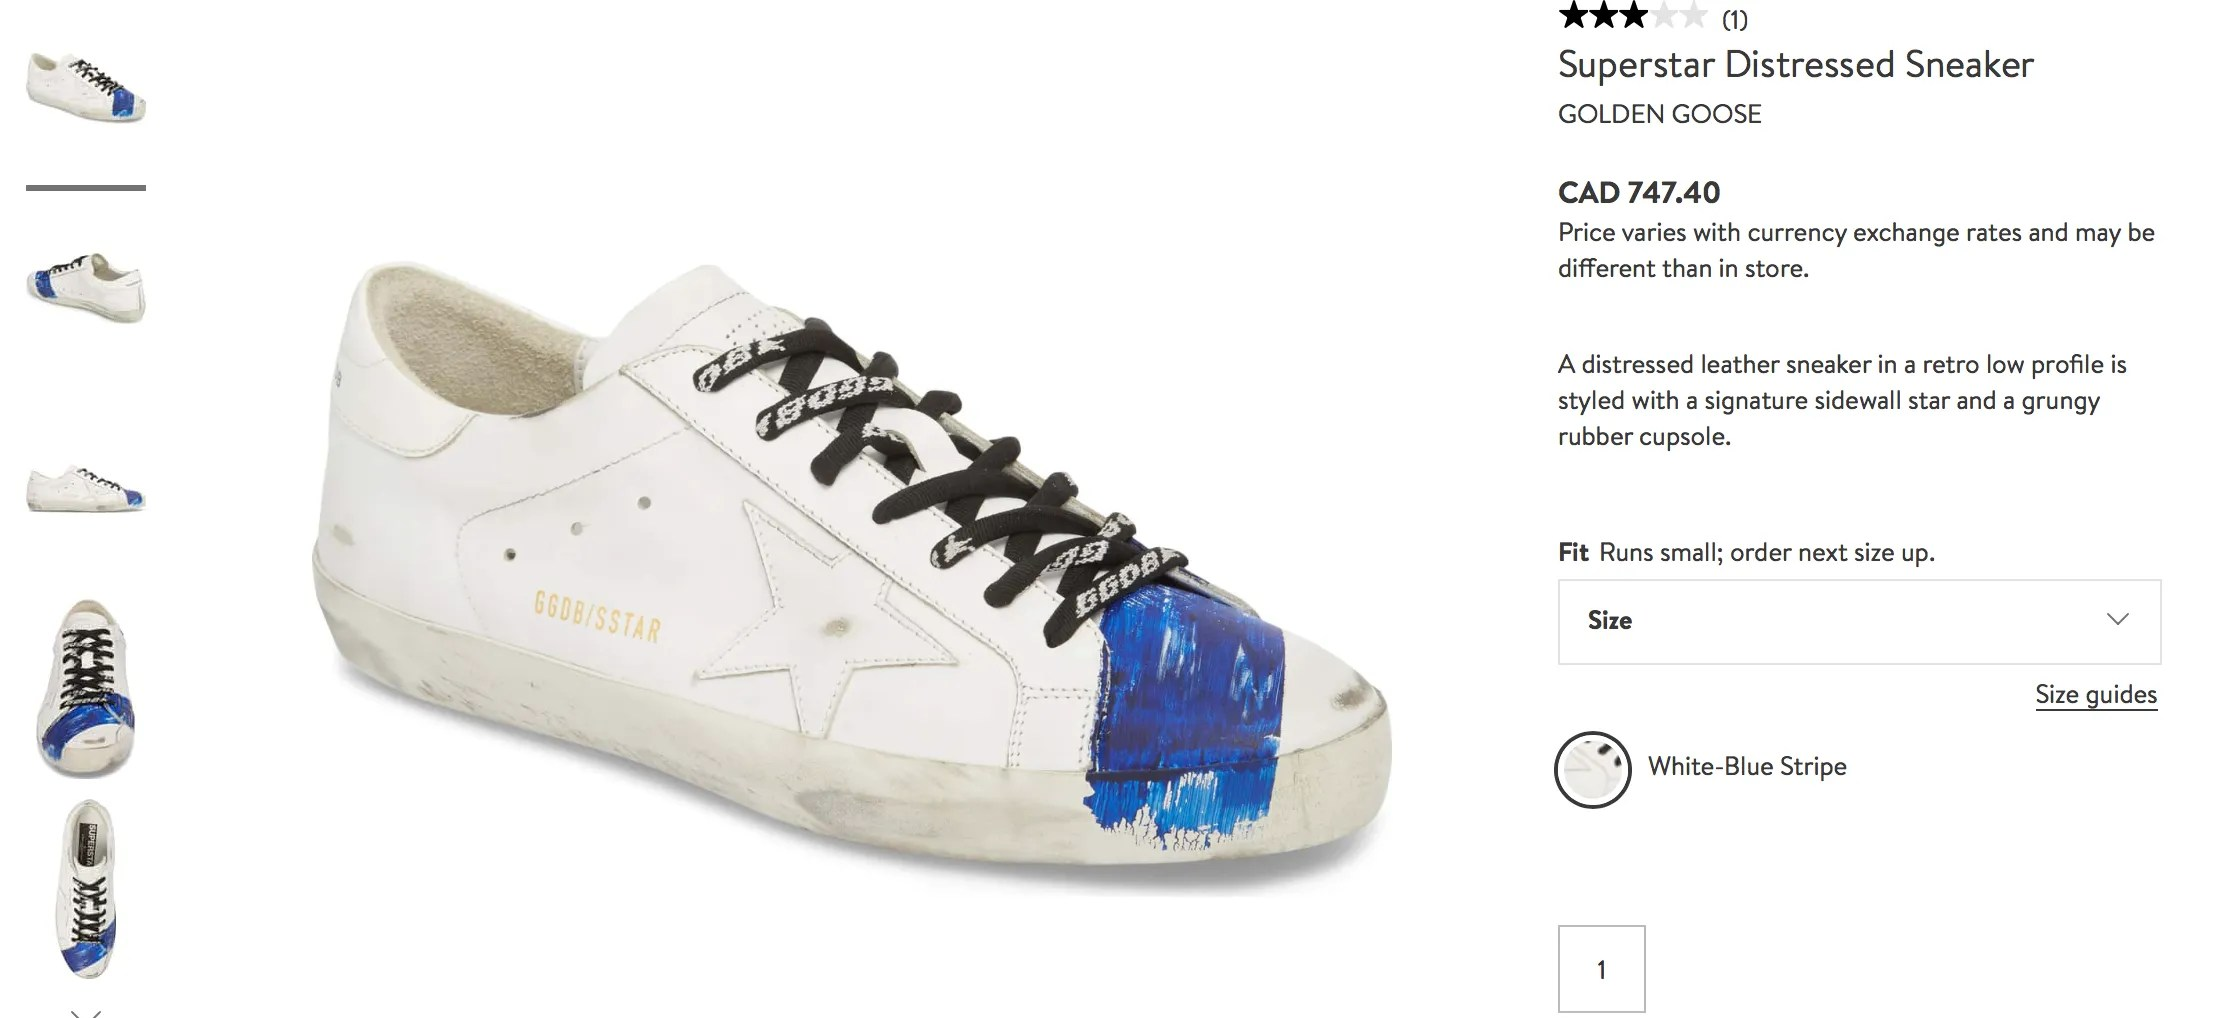 edaf53d00a8 ... plastic bags as shoes because they can t afford any but these HIDEOUS  things are selling for  500 the fashion industry is truly so f   ing  stupid.""